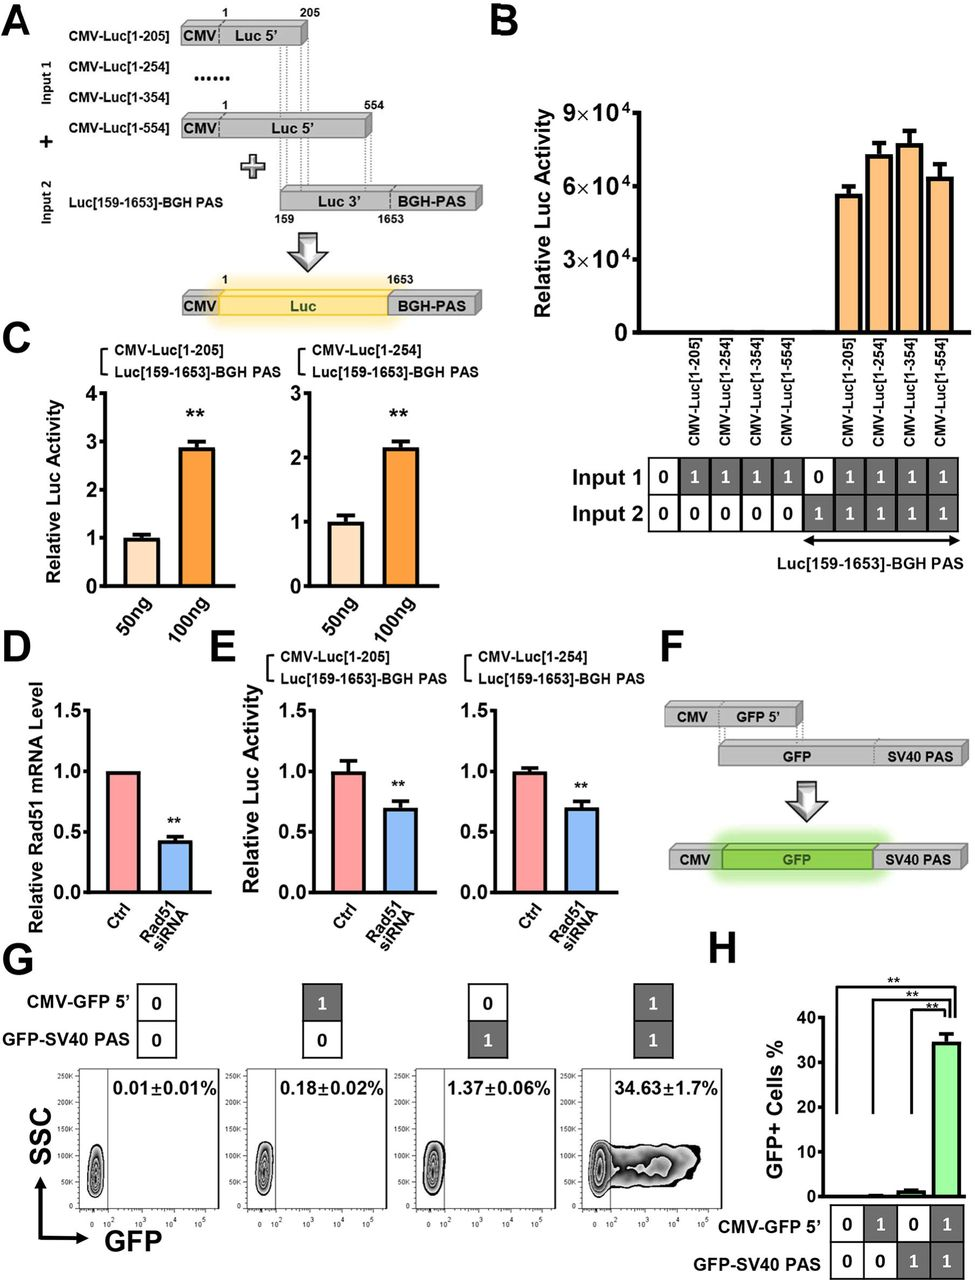 Linear Double Stranded Dnas As Innovative Biological Parts To Implement Genetic Circuits In Mammalian Cells Biorxiv